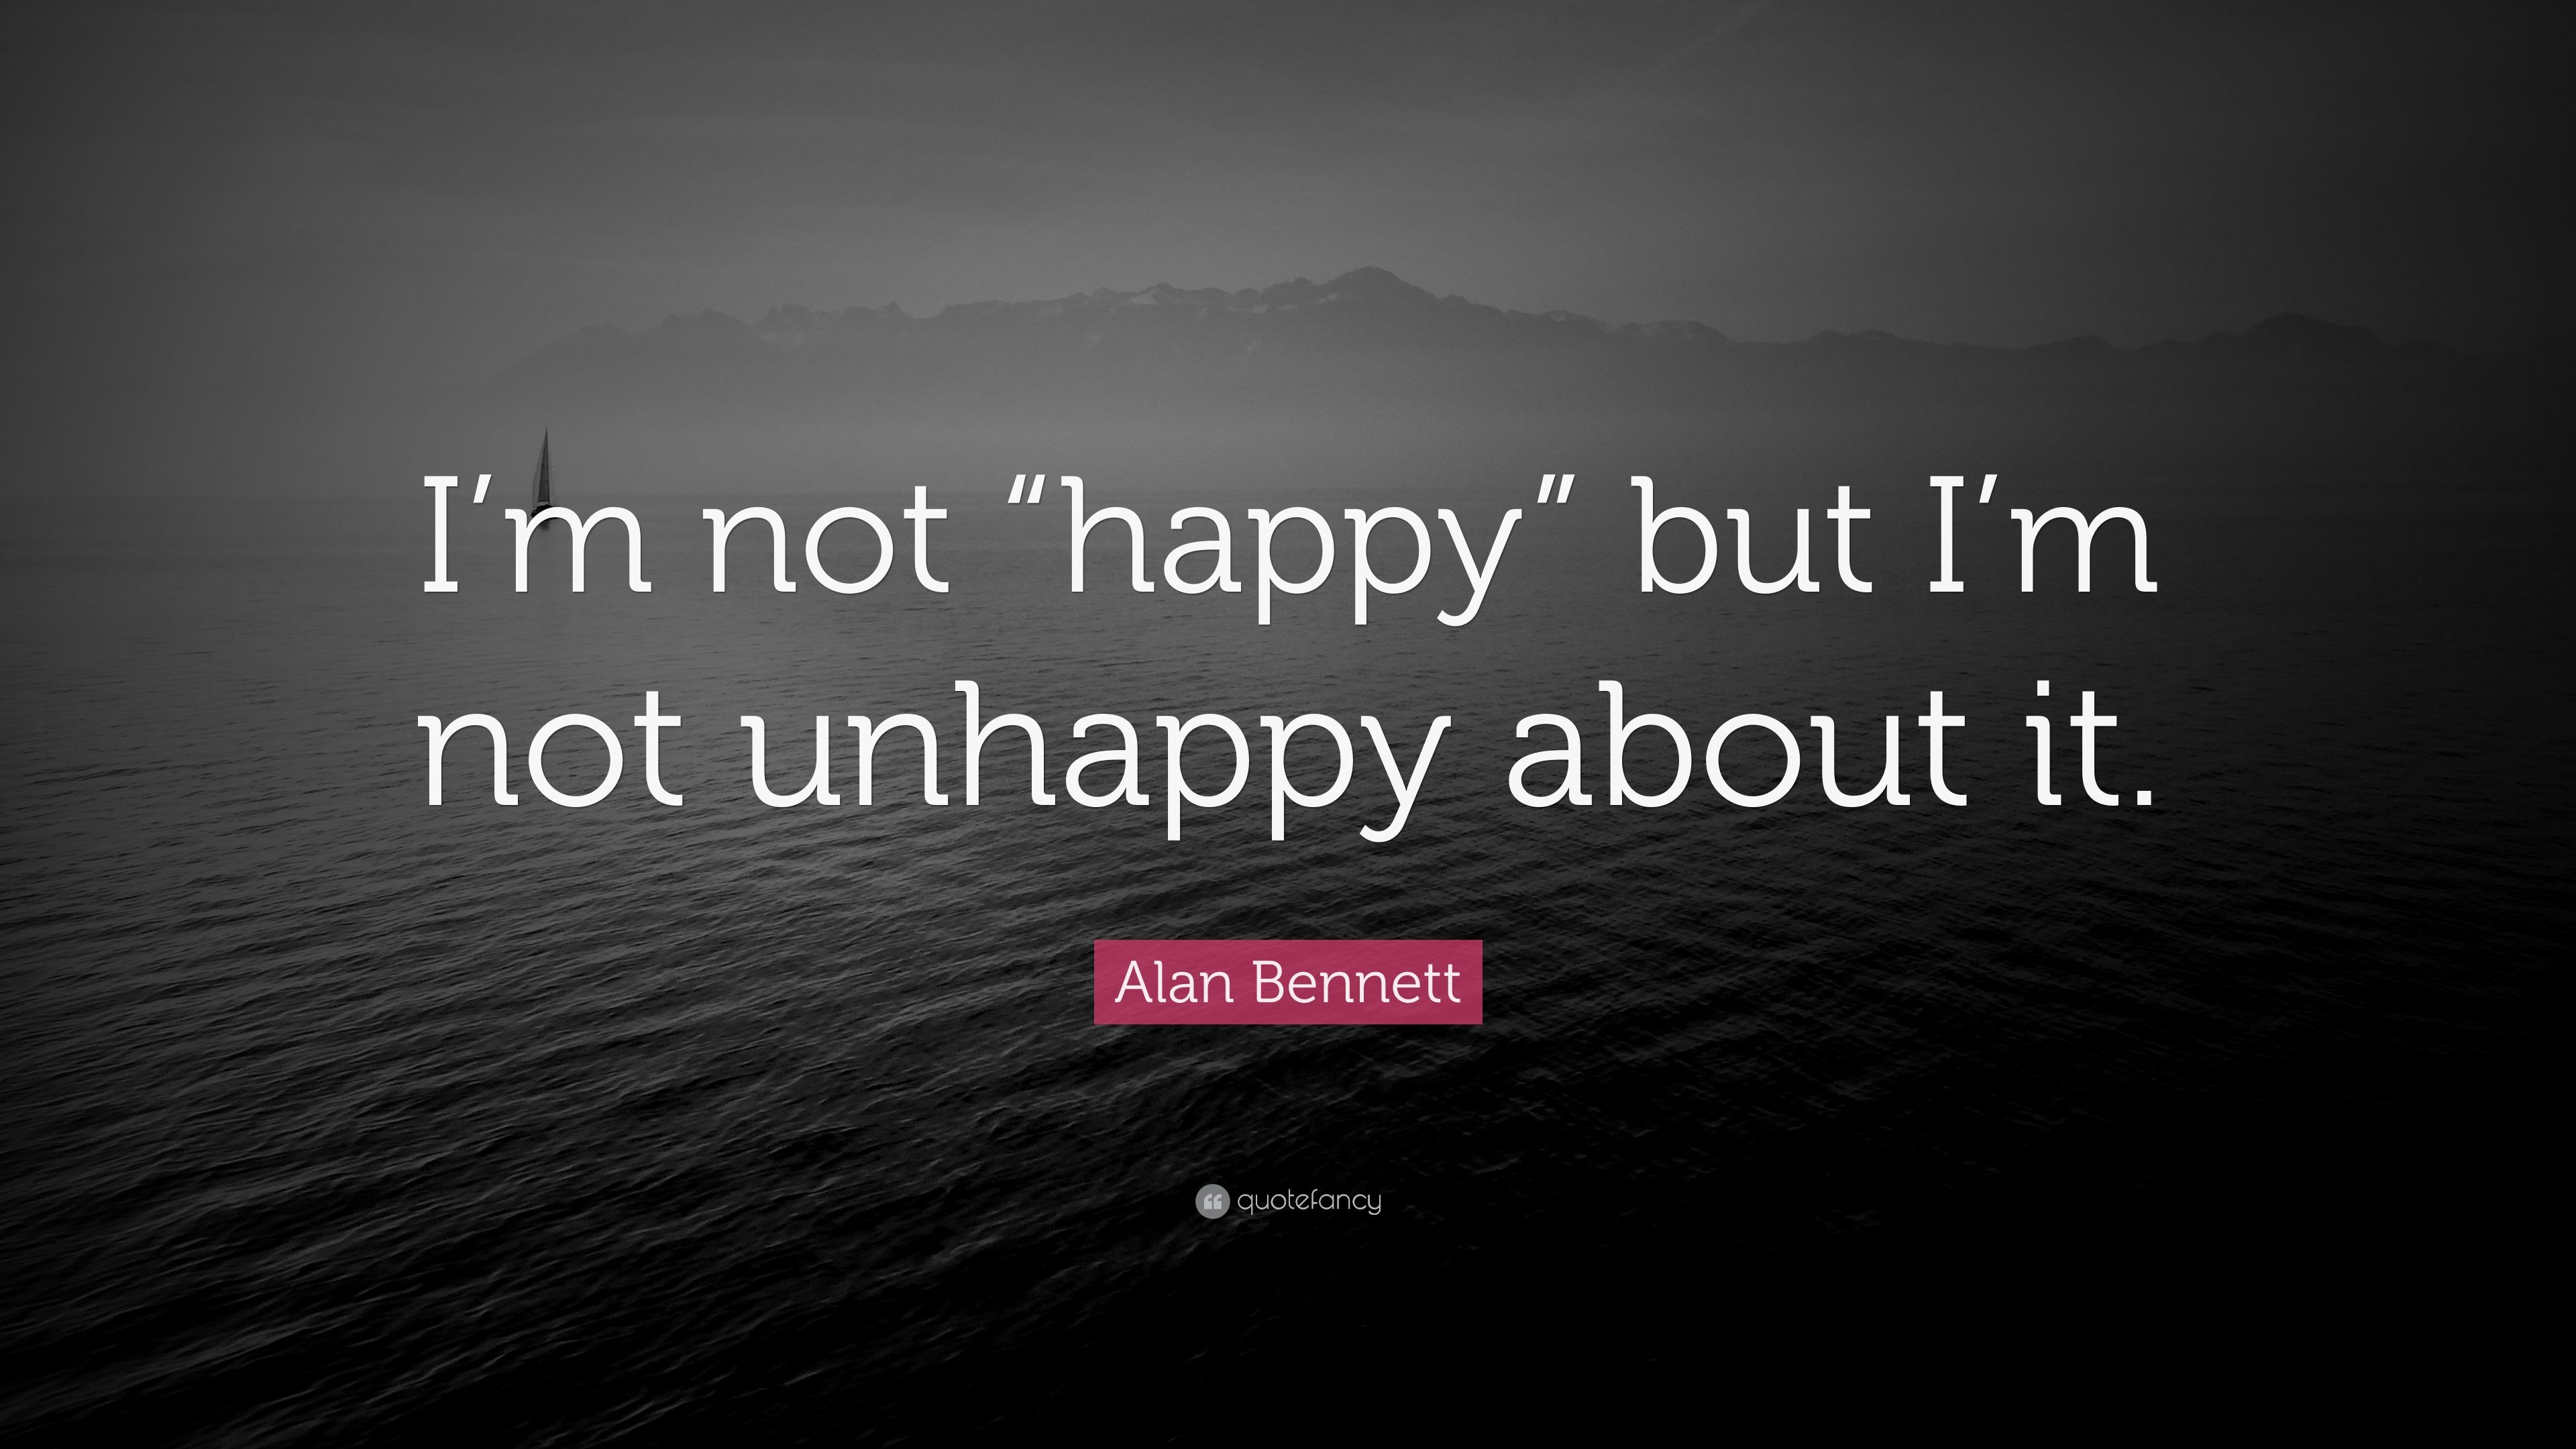 """Alan Bennett Quote: """"I'm not """"happy"""" but I'm not unhappy about it."""" (9 wallpapers) - Quotefancy"""